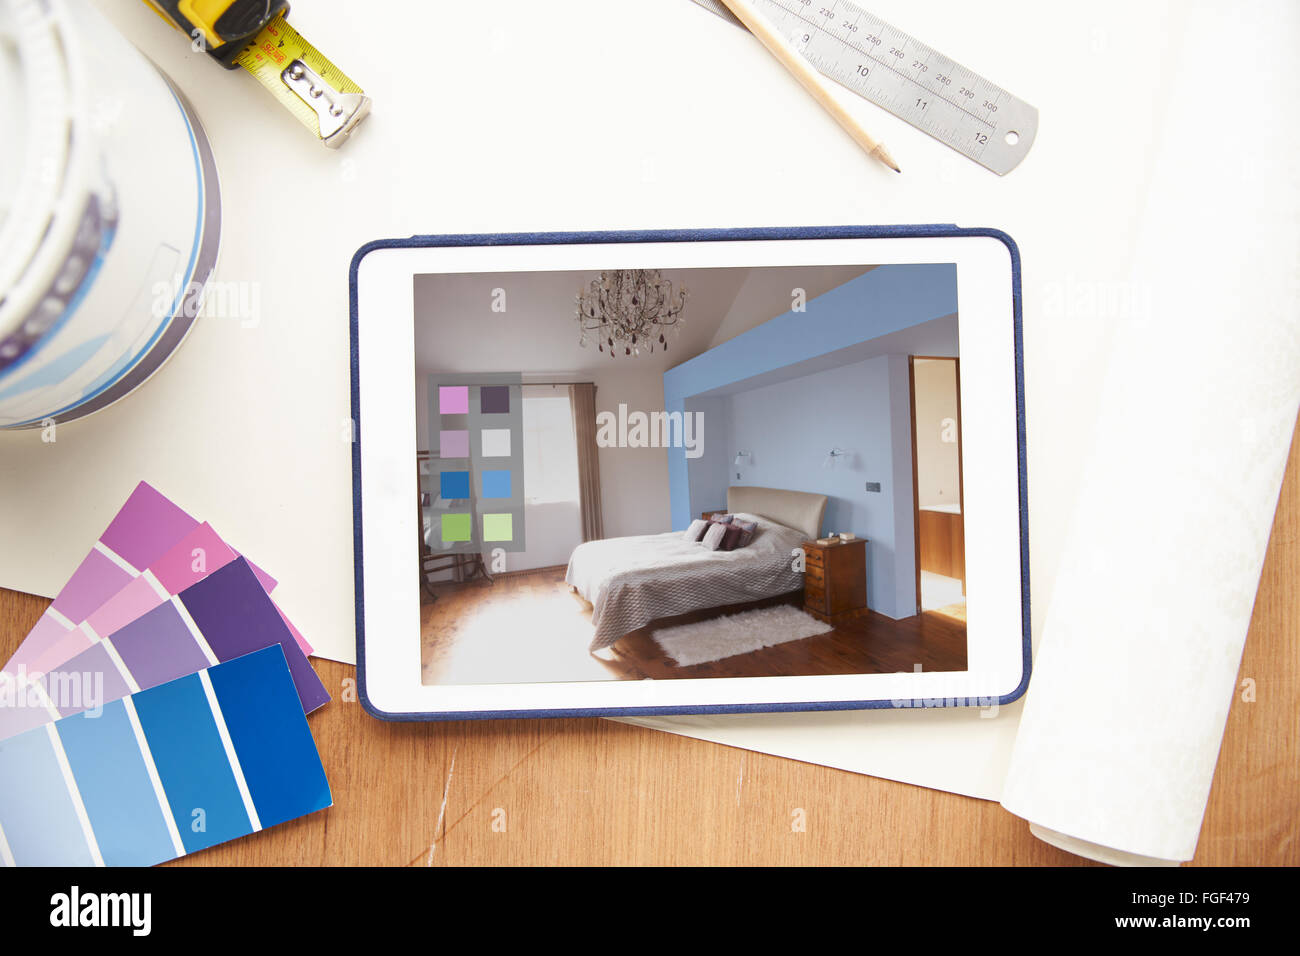 Interior Design Application On Digital Tablet - Stock Image